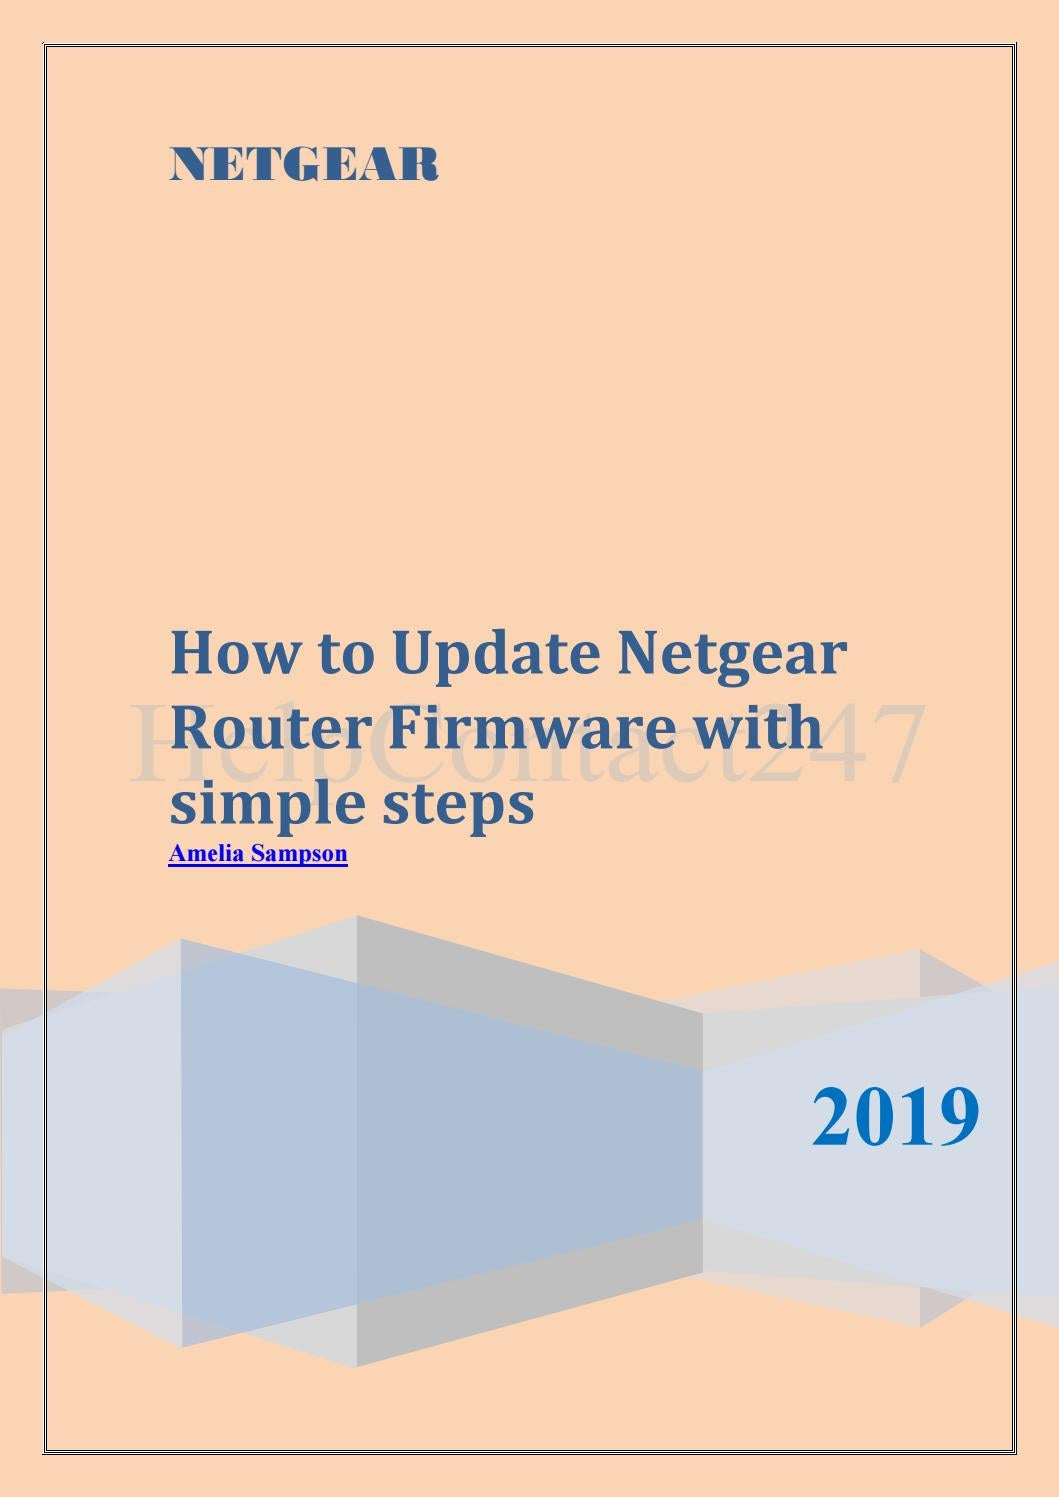 Netgear Router Firmware Update with simple steps